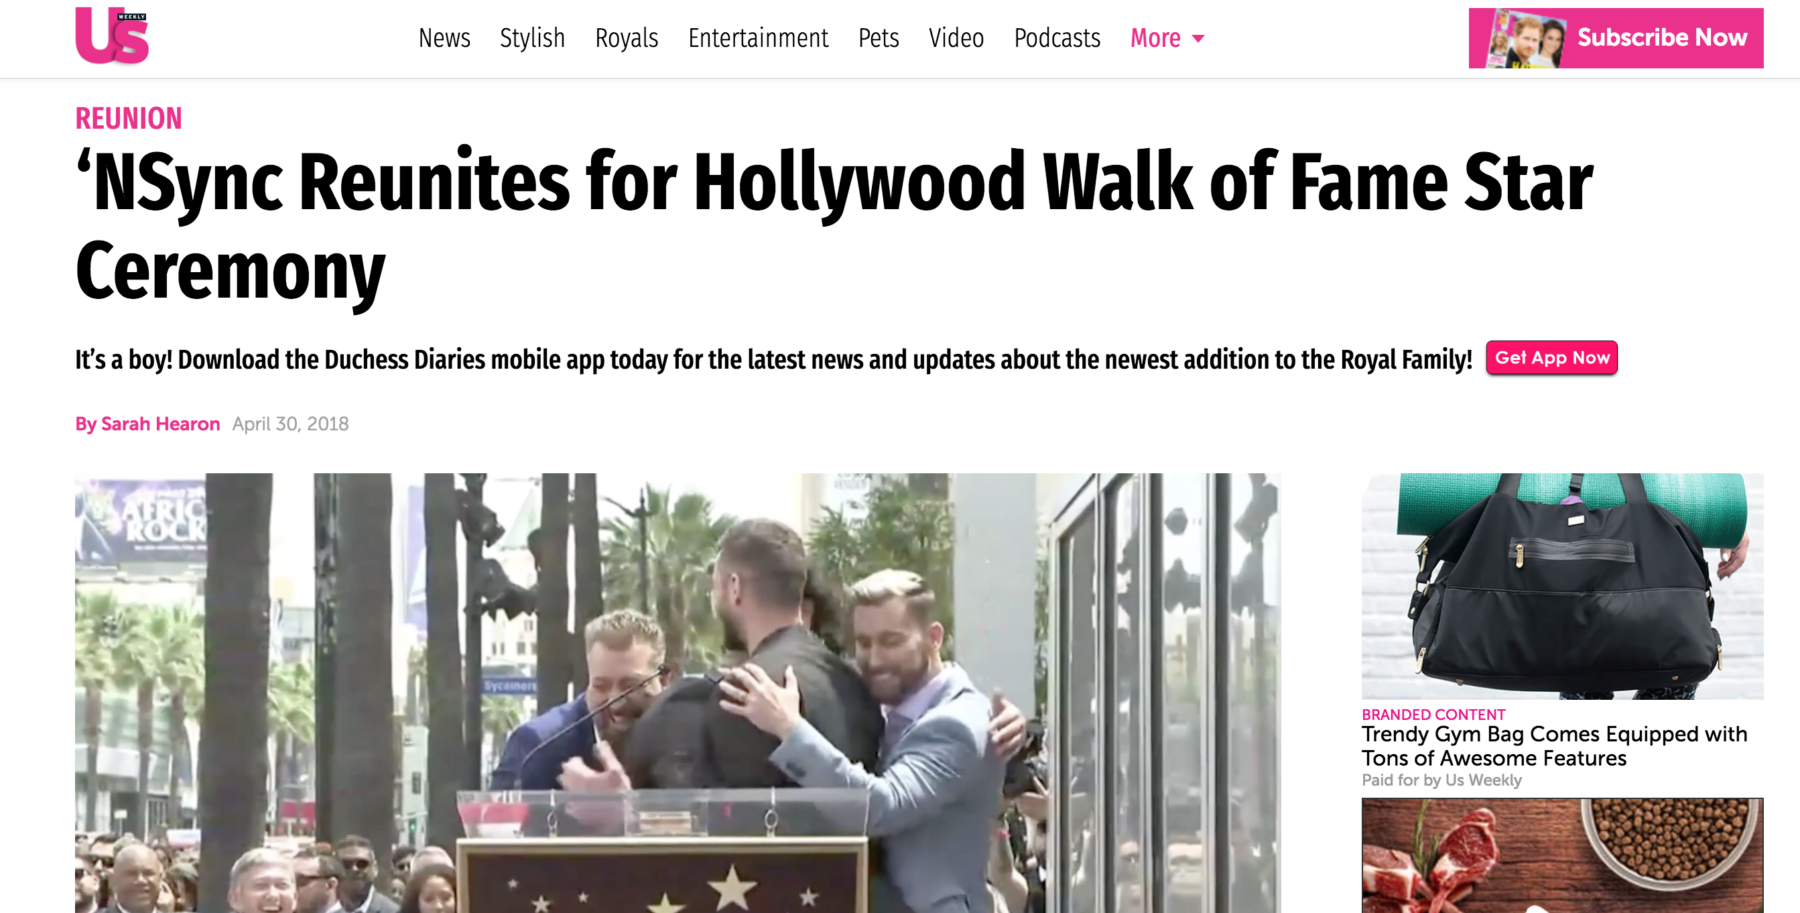 NSYNC's Epic Walk of Fame Ceremony - Epic Rights